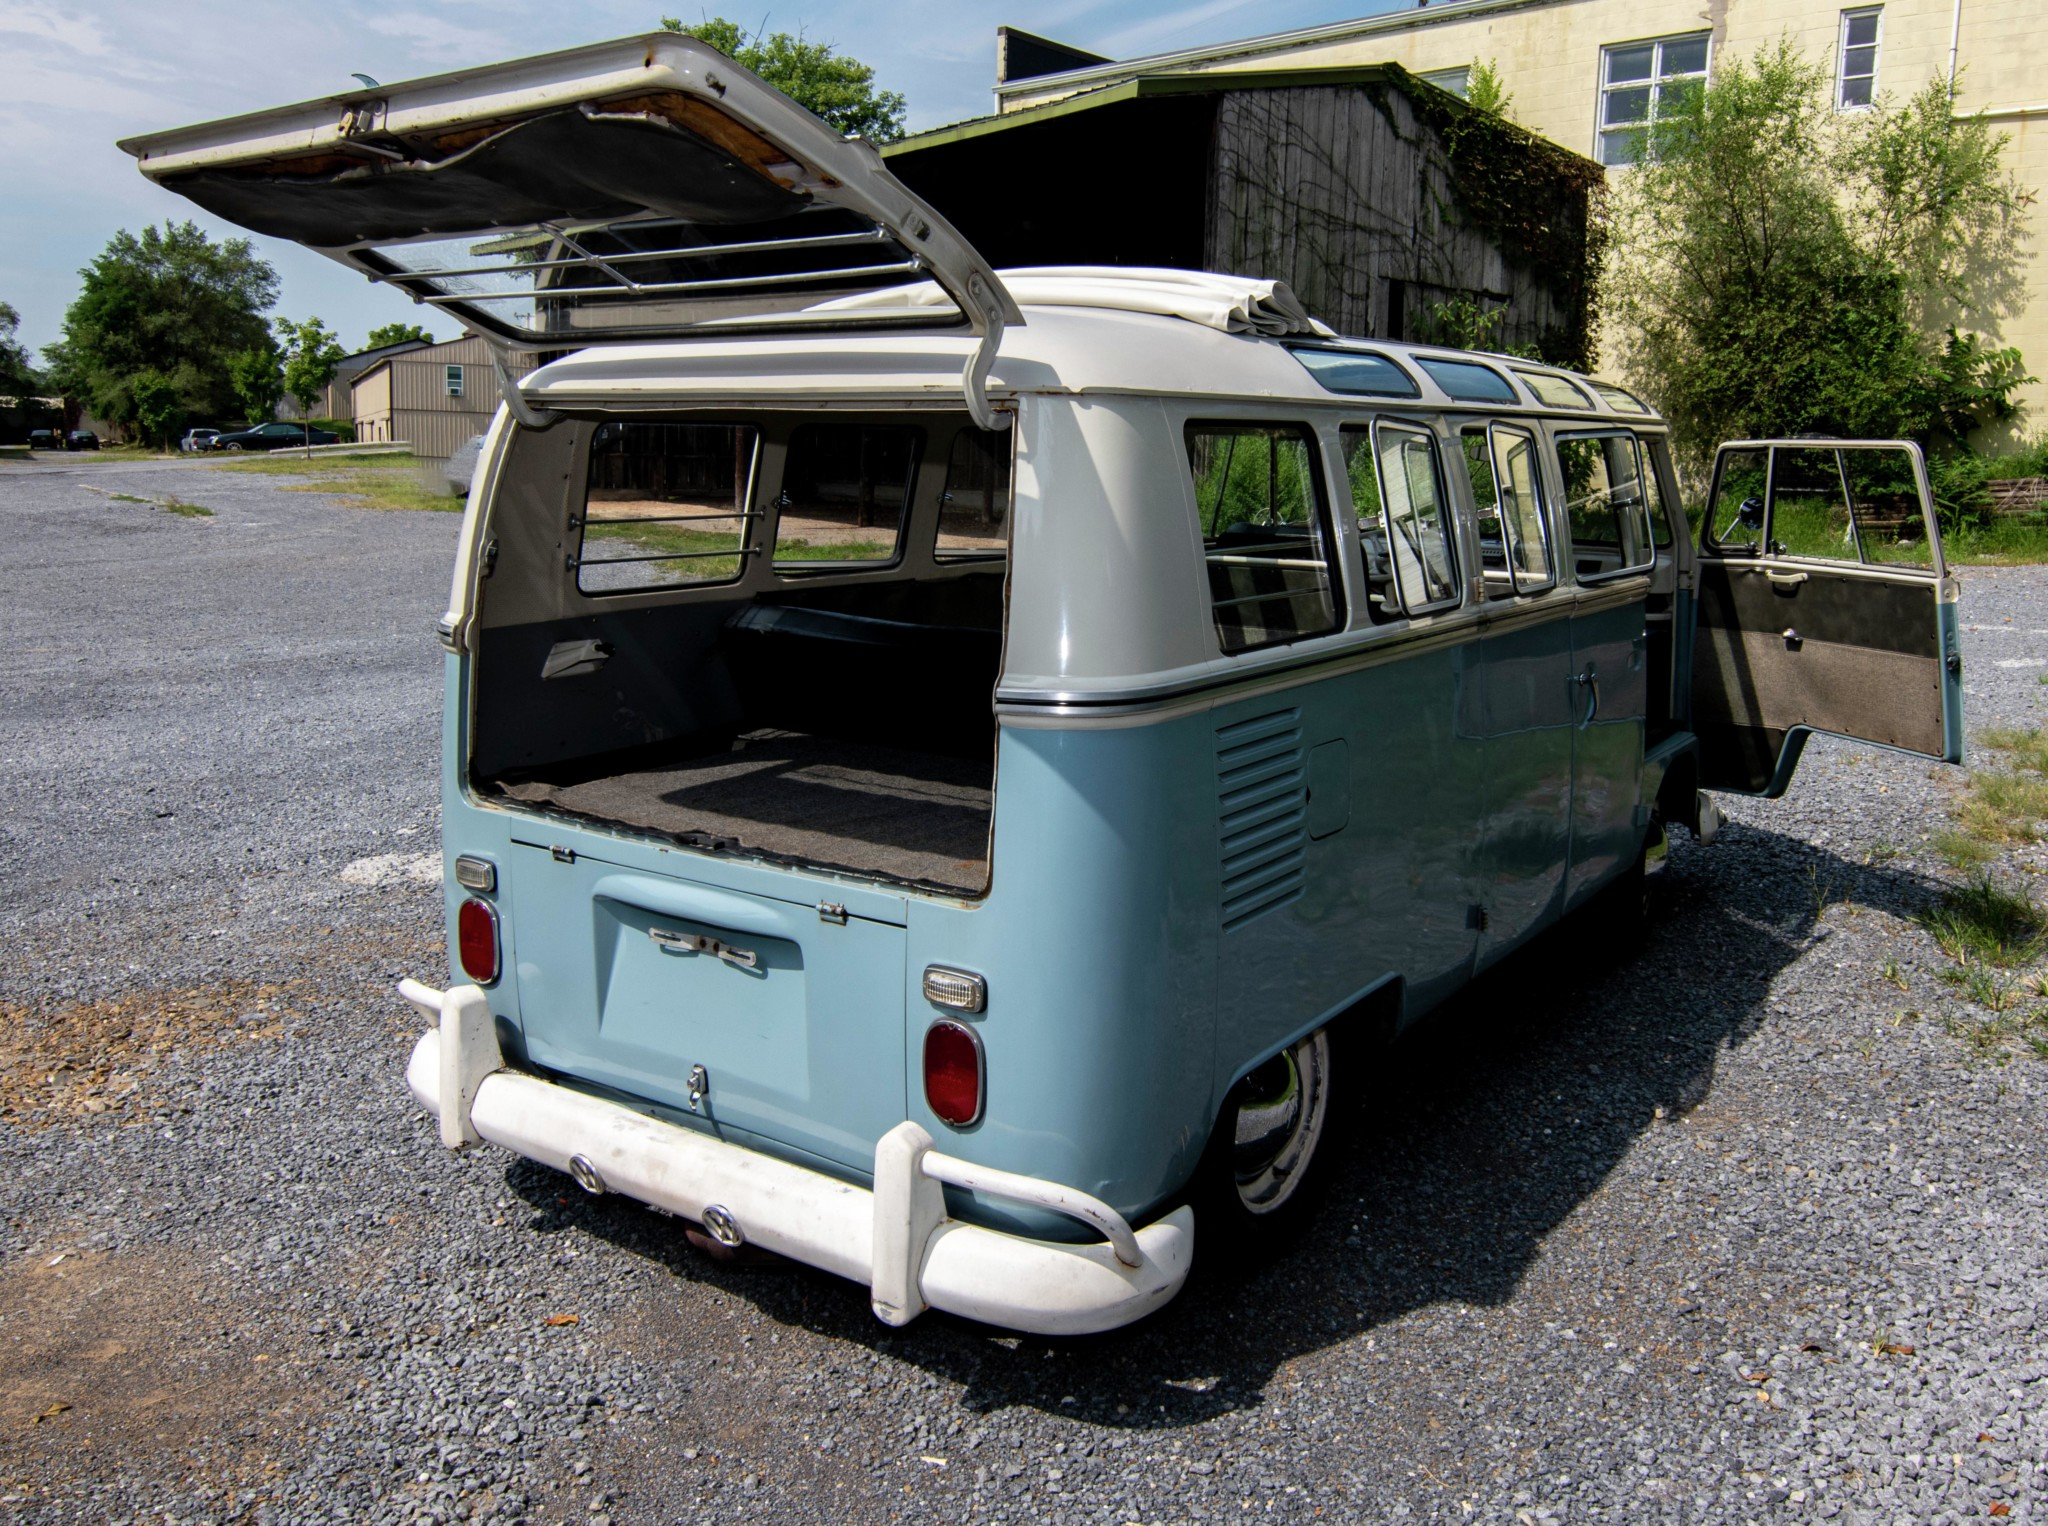 1967_volkswagen_bus_156556138291b6bceceffc6298Bus-Full-View-15-Dark